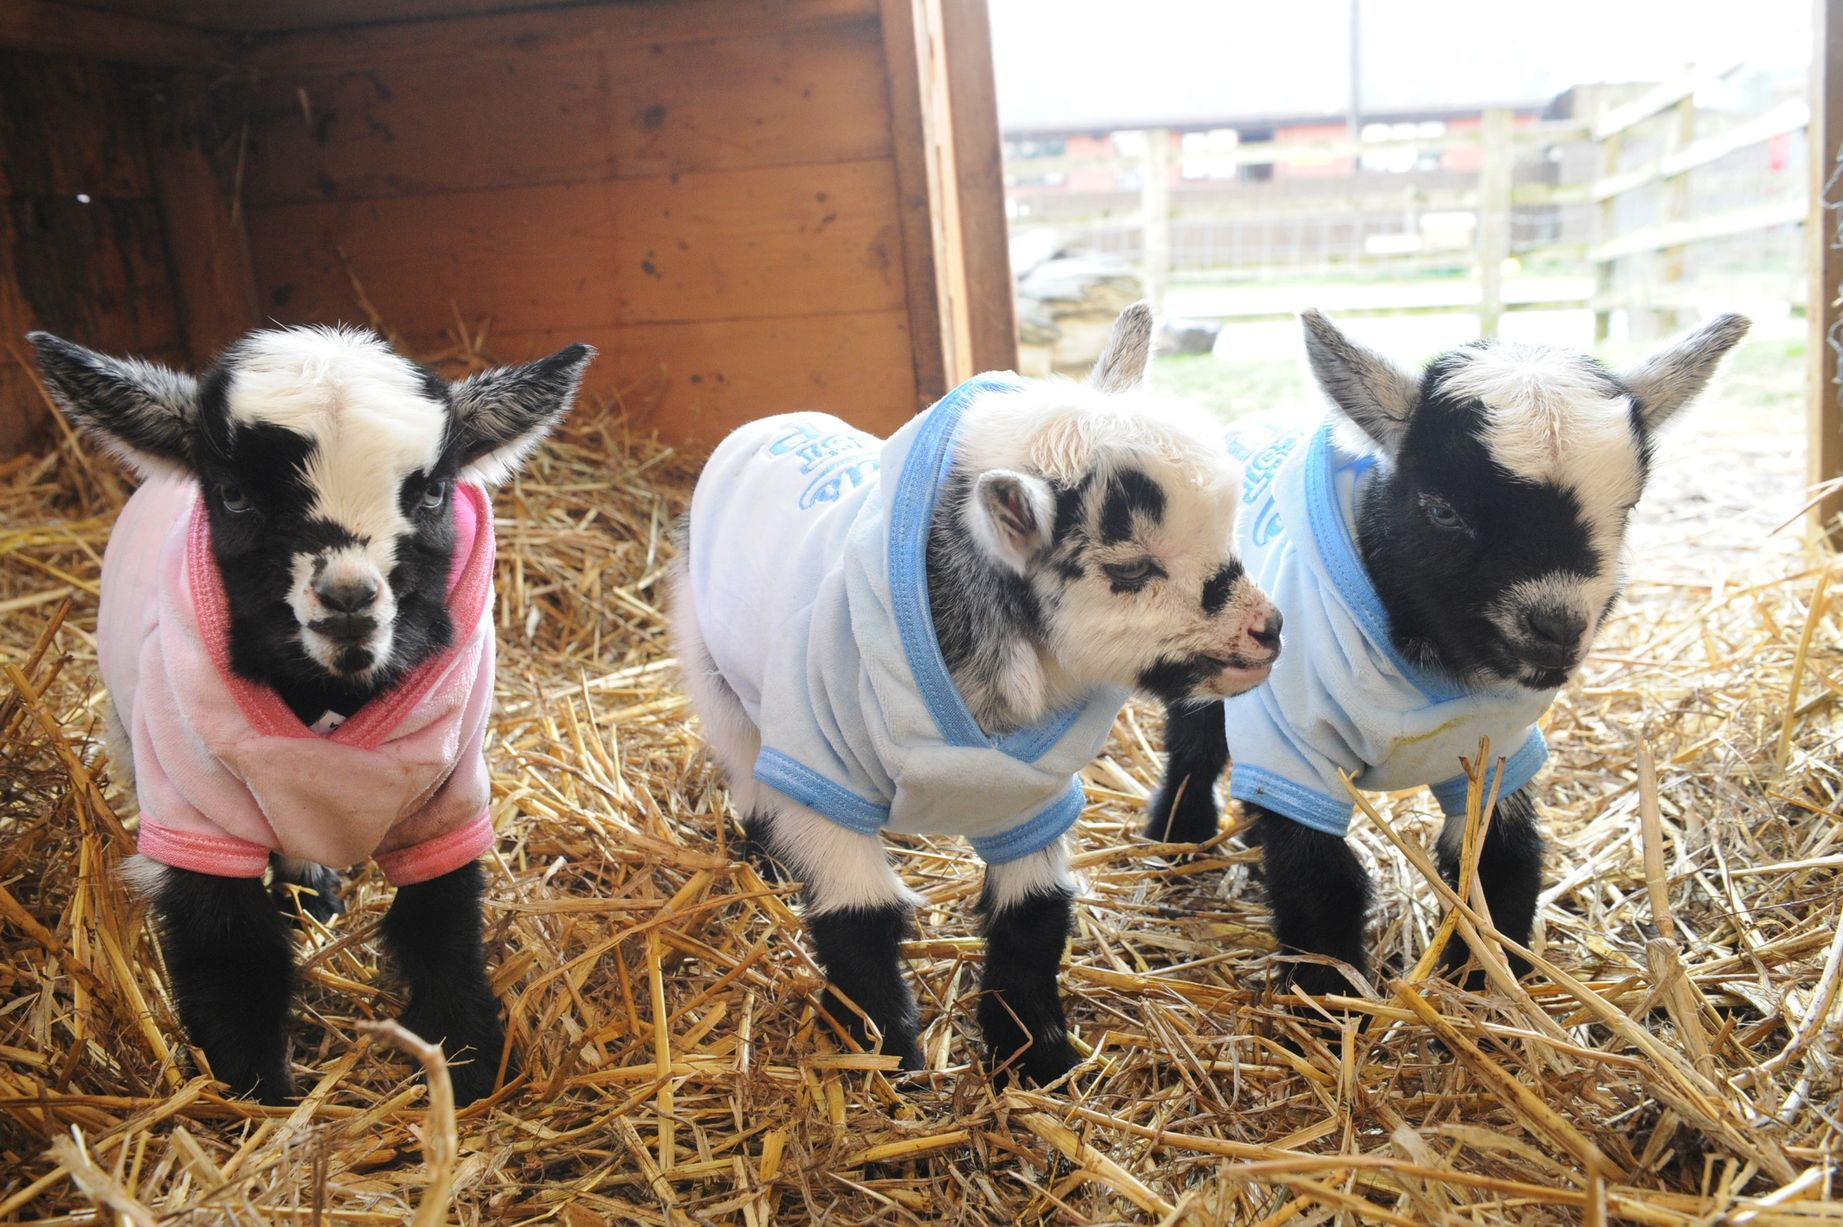 Baby Goats In Onesies Baby Goats In Sweaters Cute Goats Goats